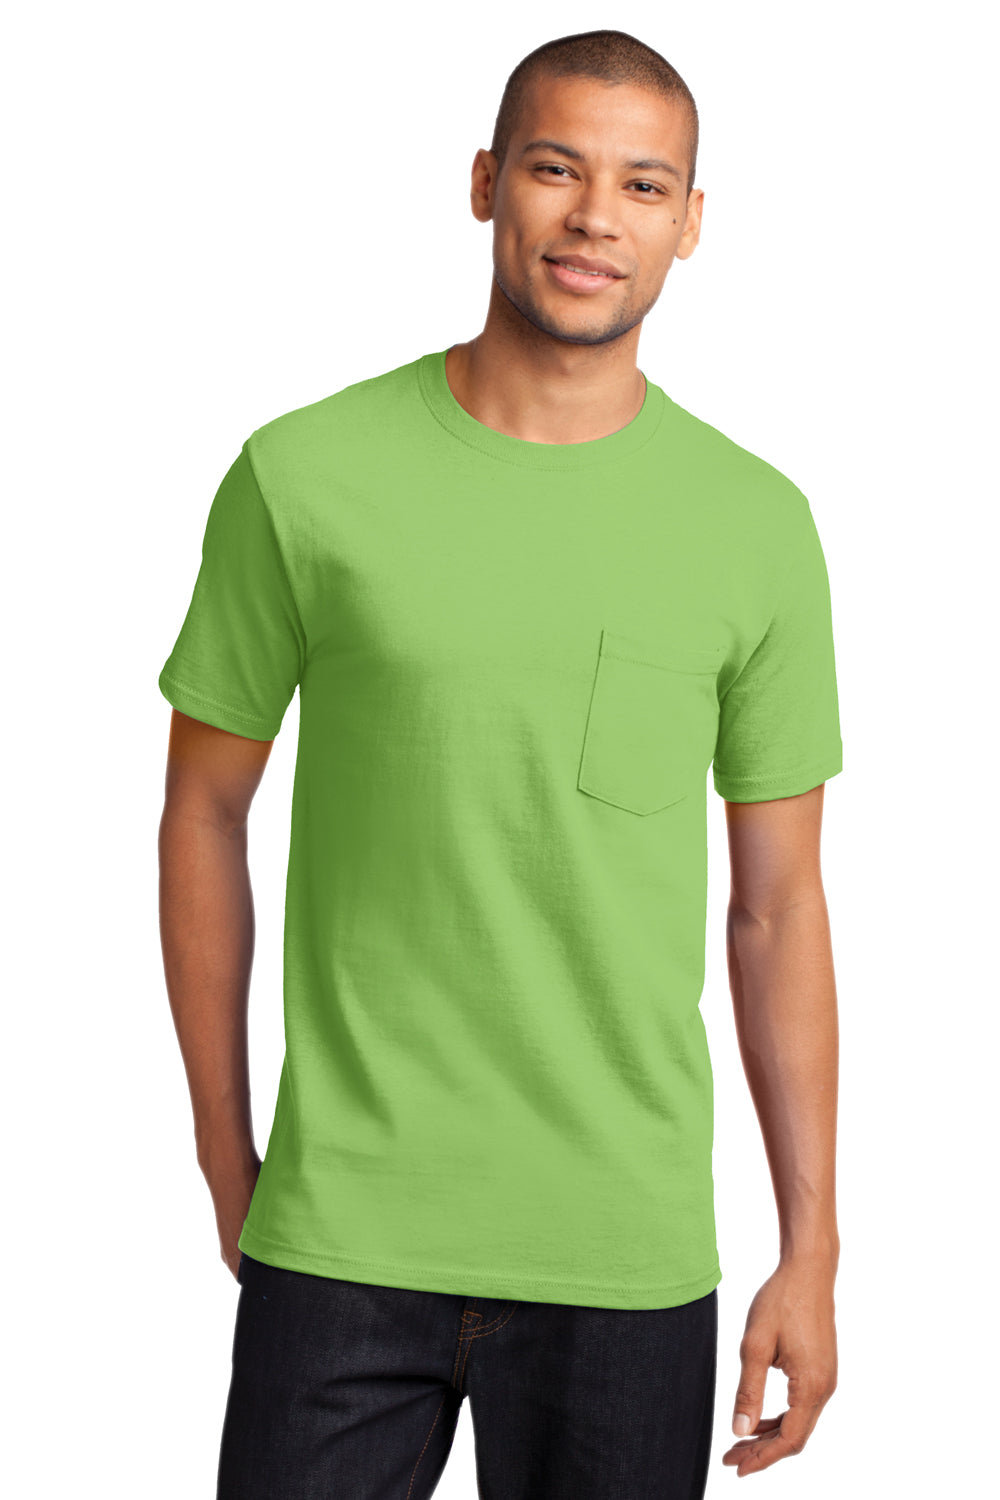 Port & Company PC61P Mens Essential Short Sleeve Crewneck T-Shirt w/ Pocket Lime Green Front